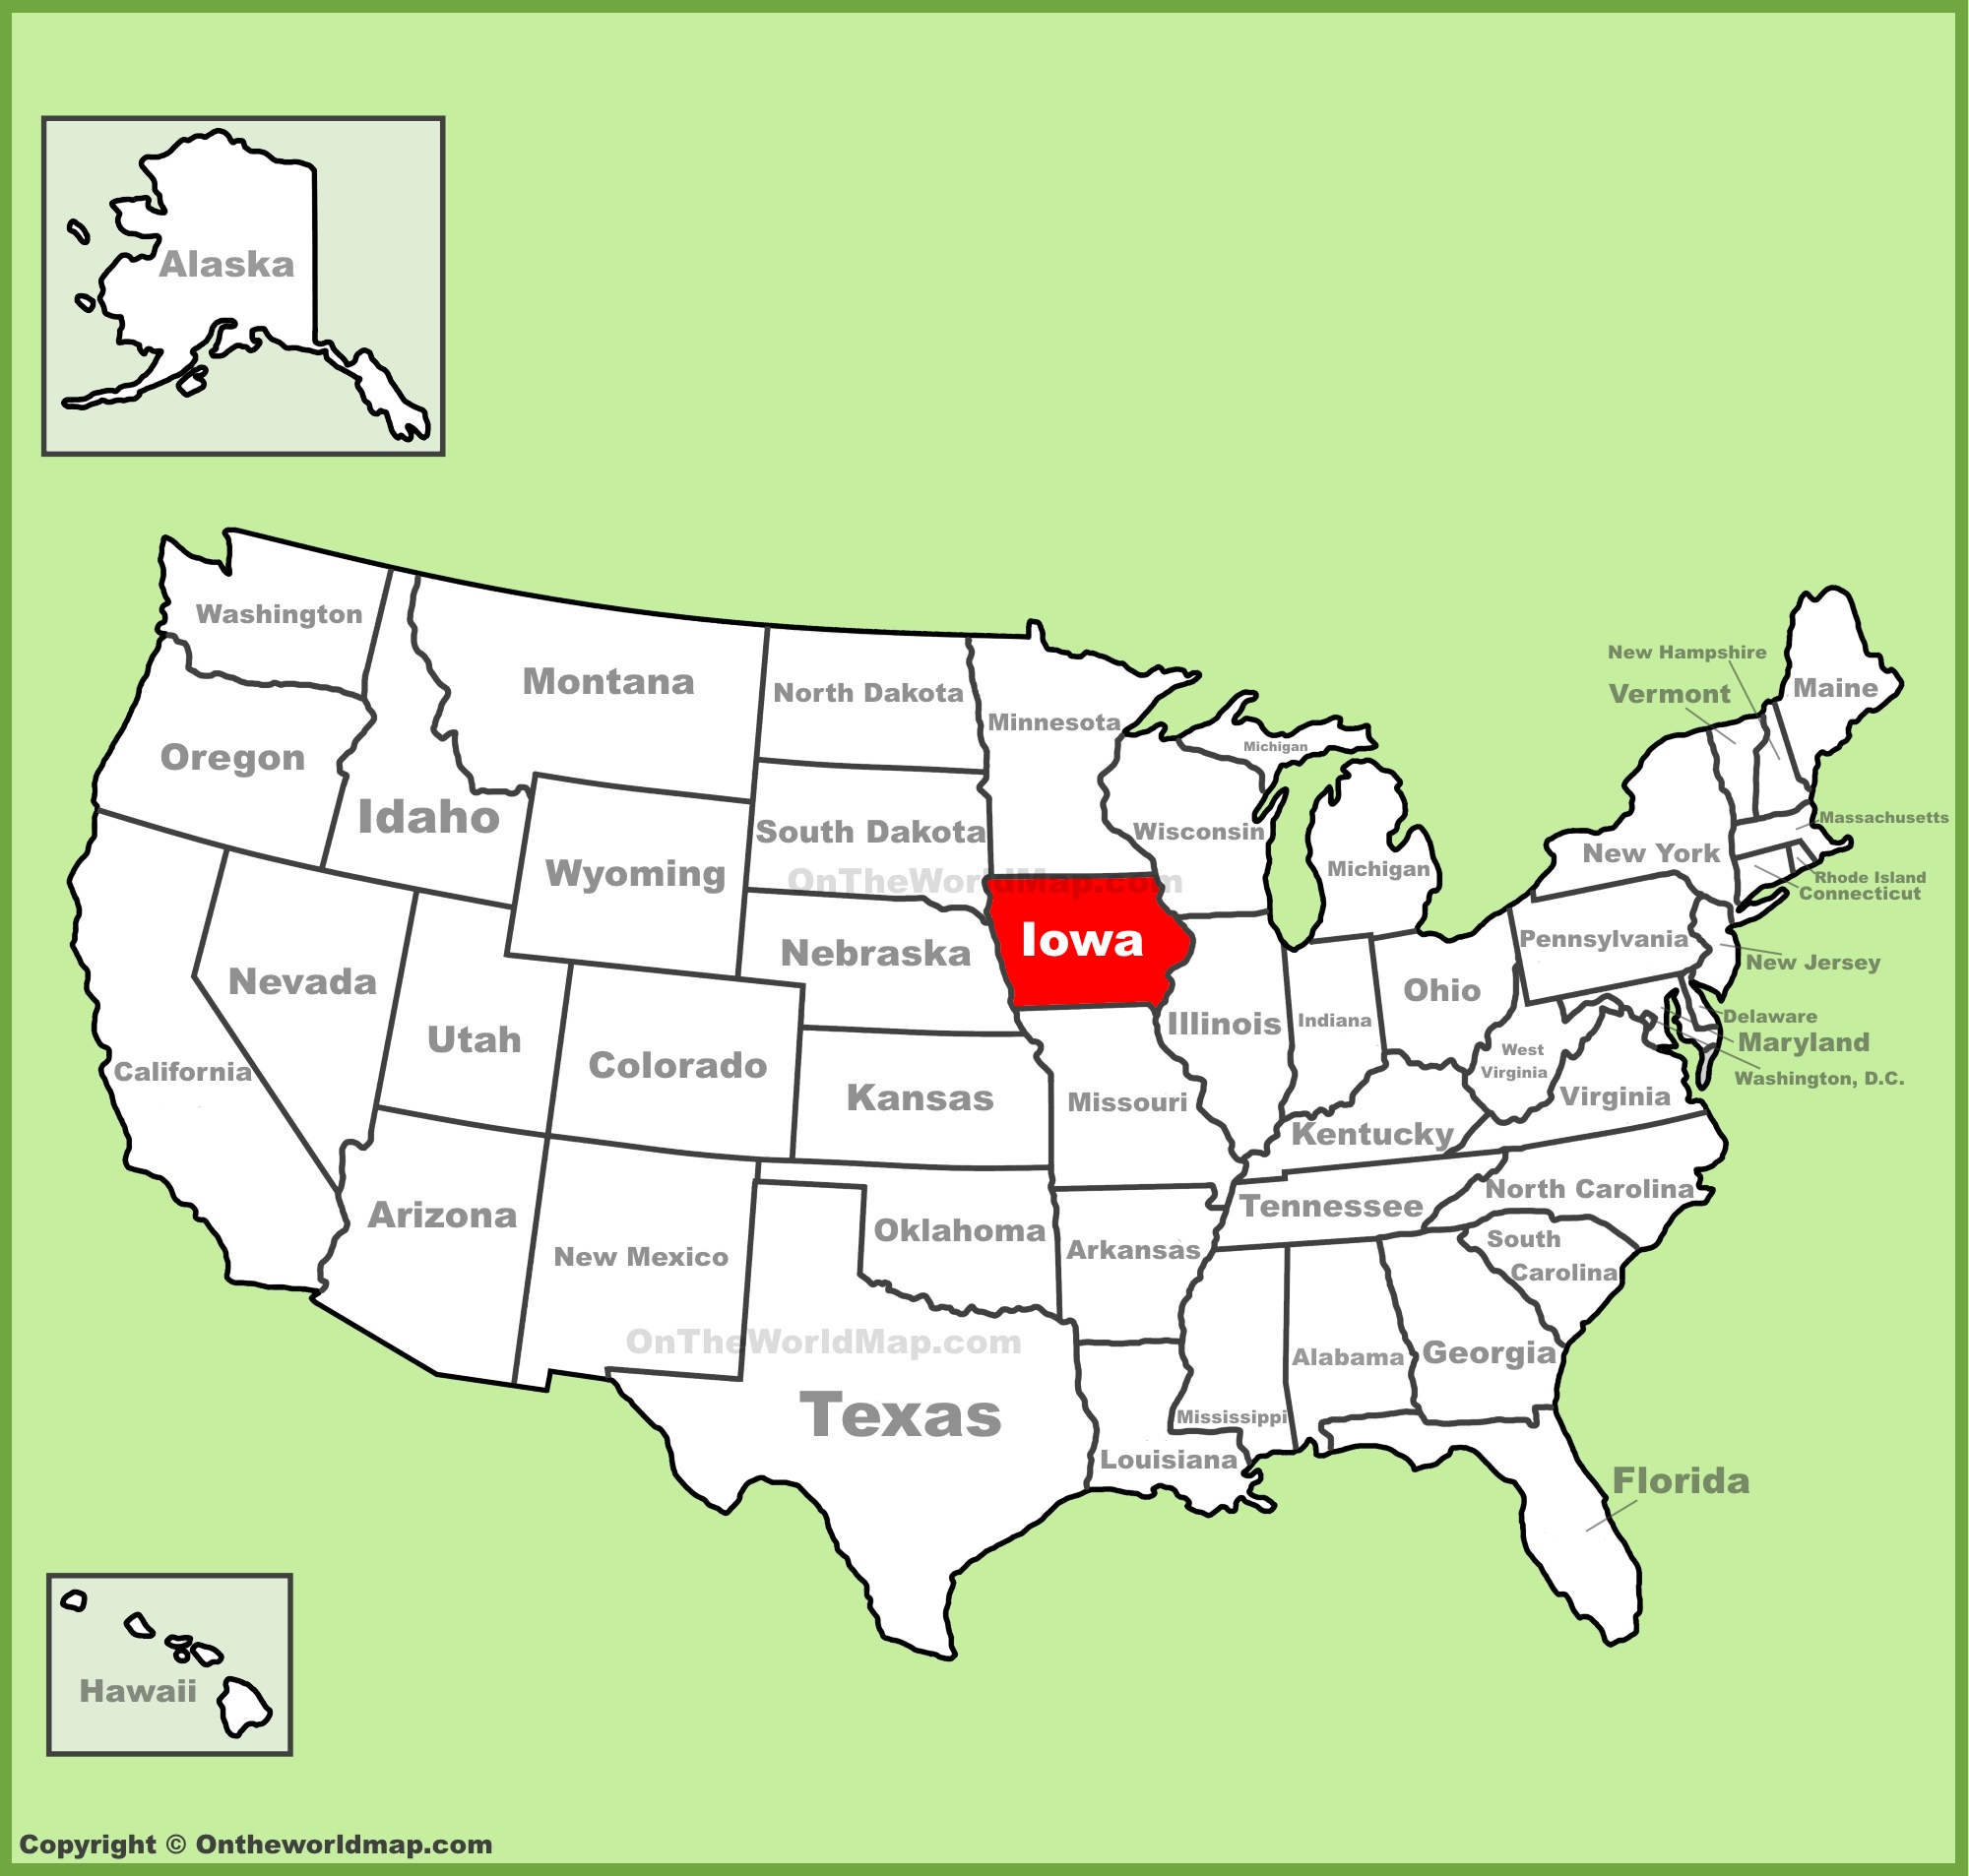 Iowa State Maps USA Maps Of Iowa IA - Iowa map us